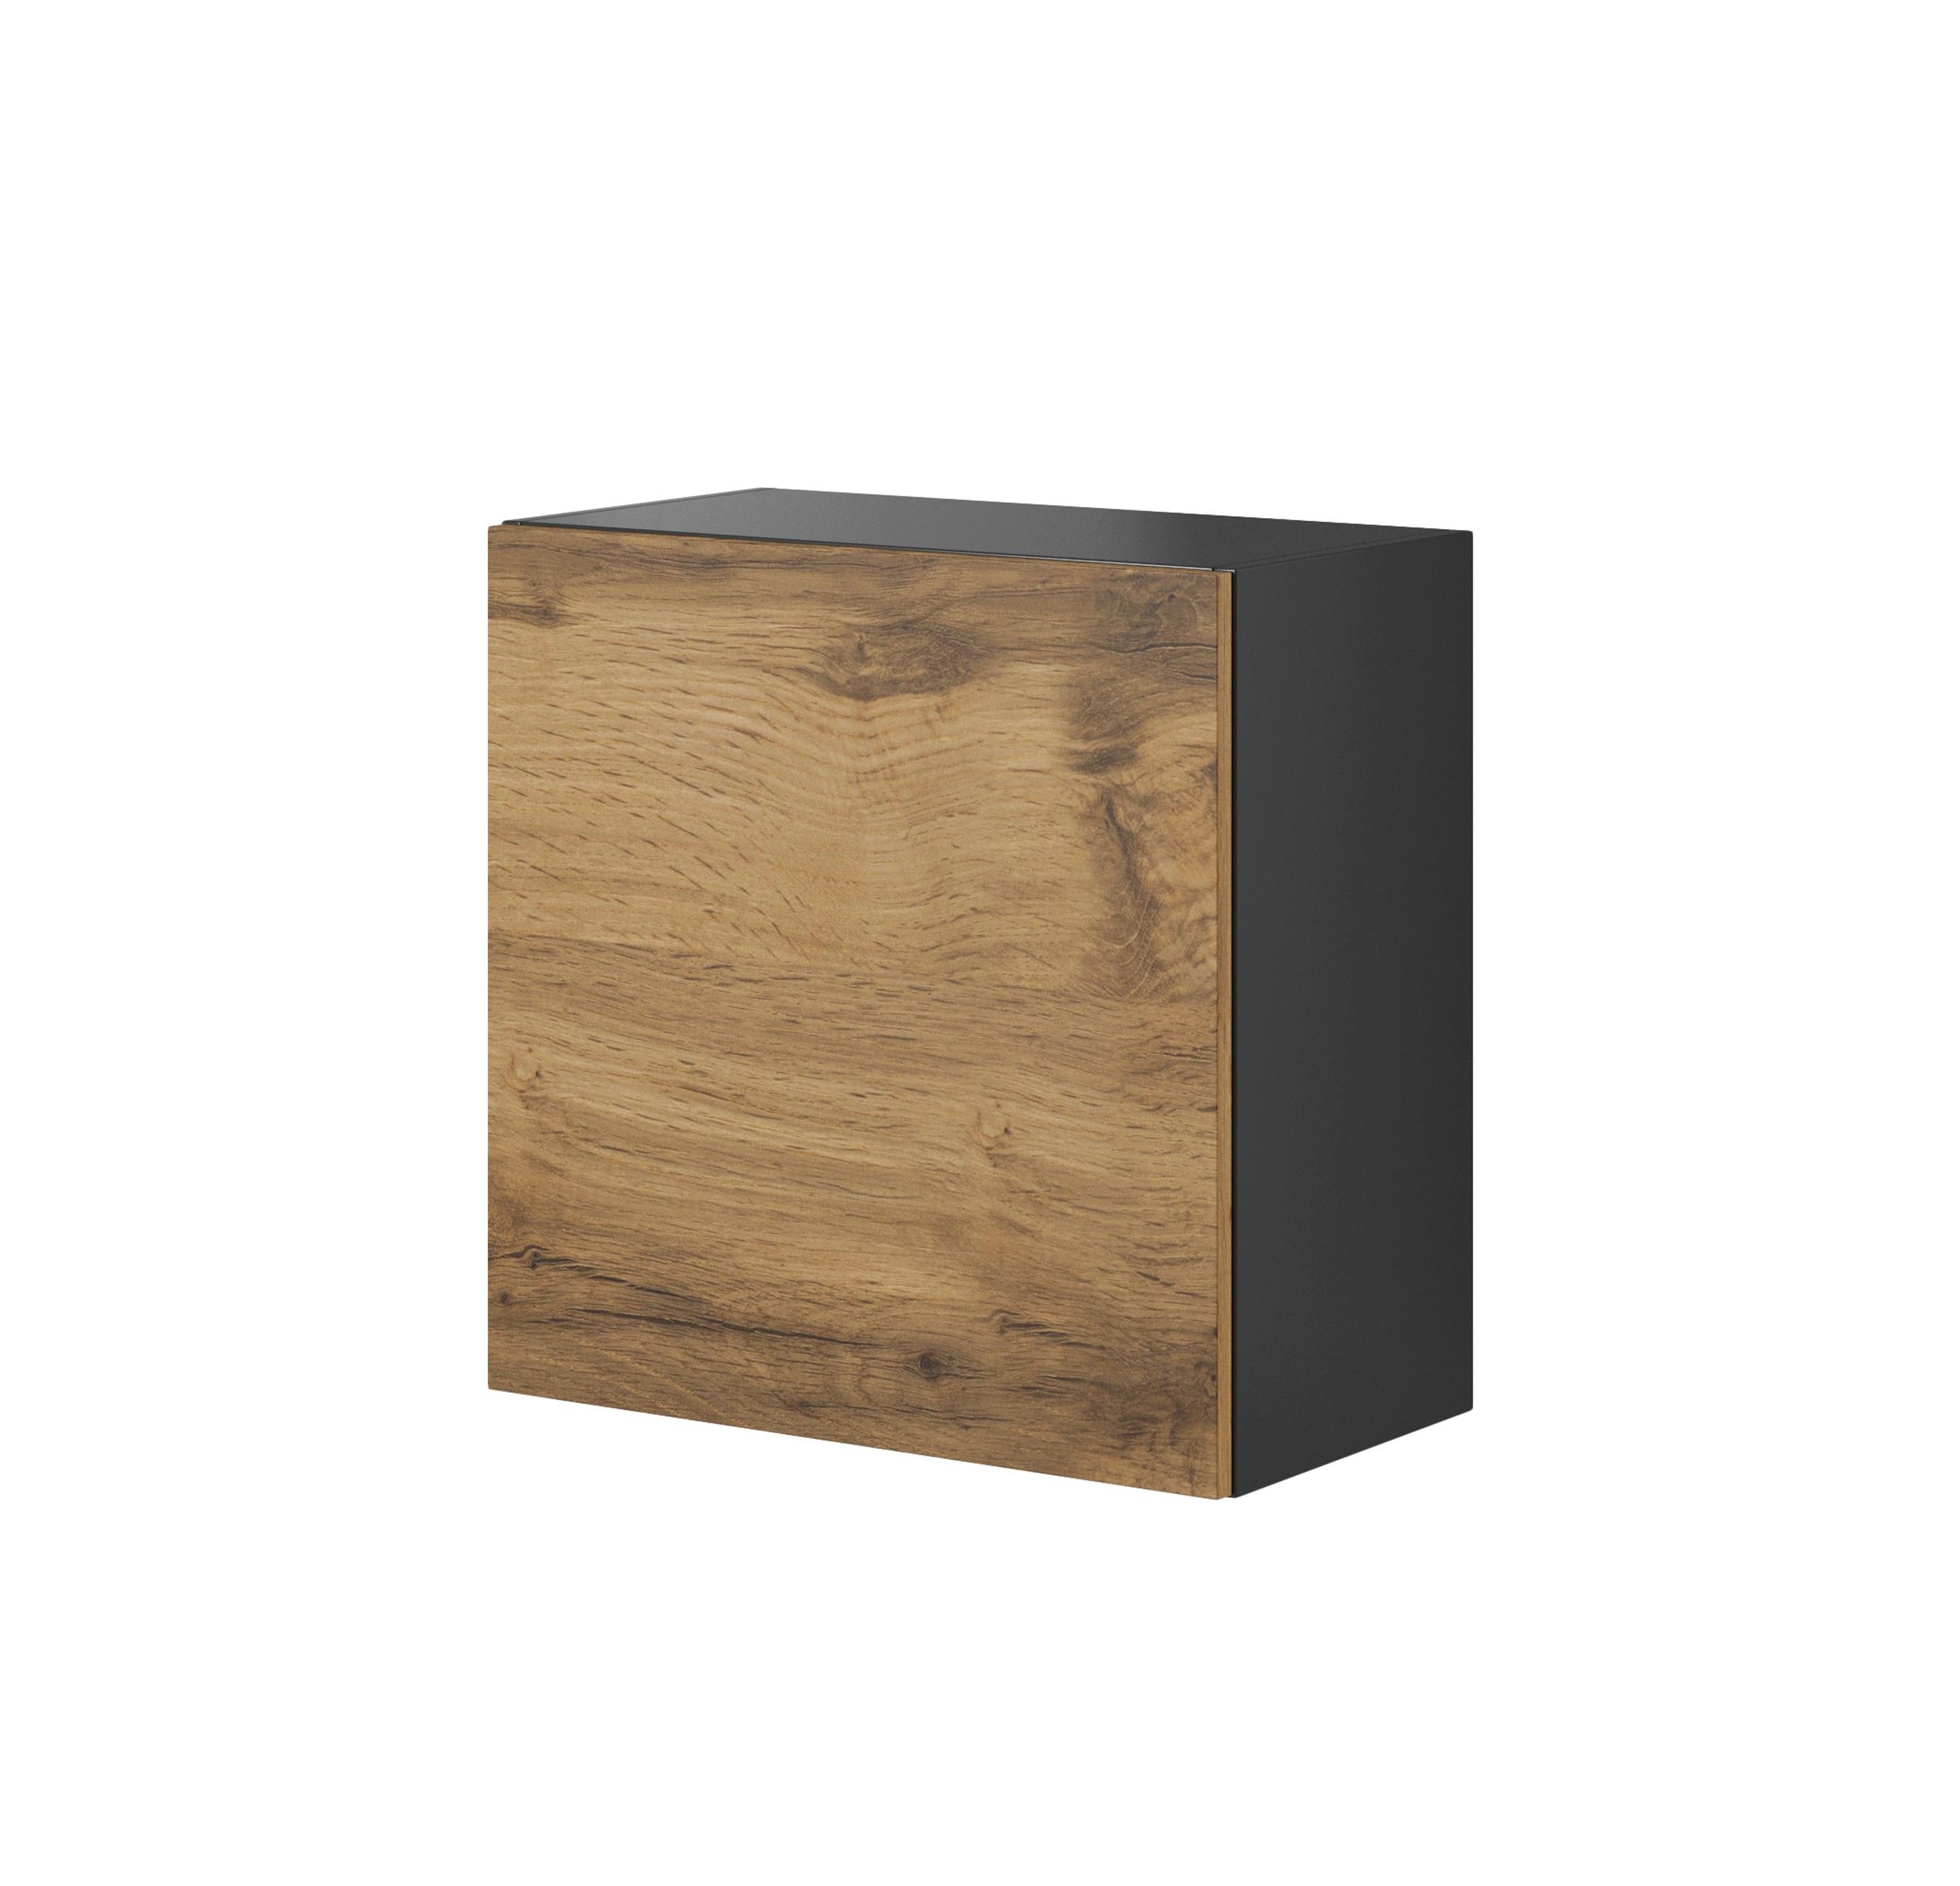 Cabinet suspendat din pal si MDF, cu 1 usa Livo W-55 Wotan Oak / Anthracite, l55xA30xH55 cm somproduct.ro